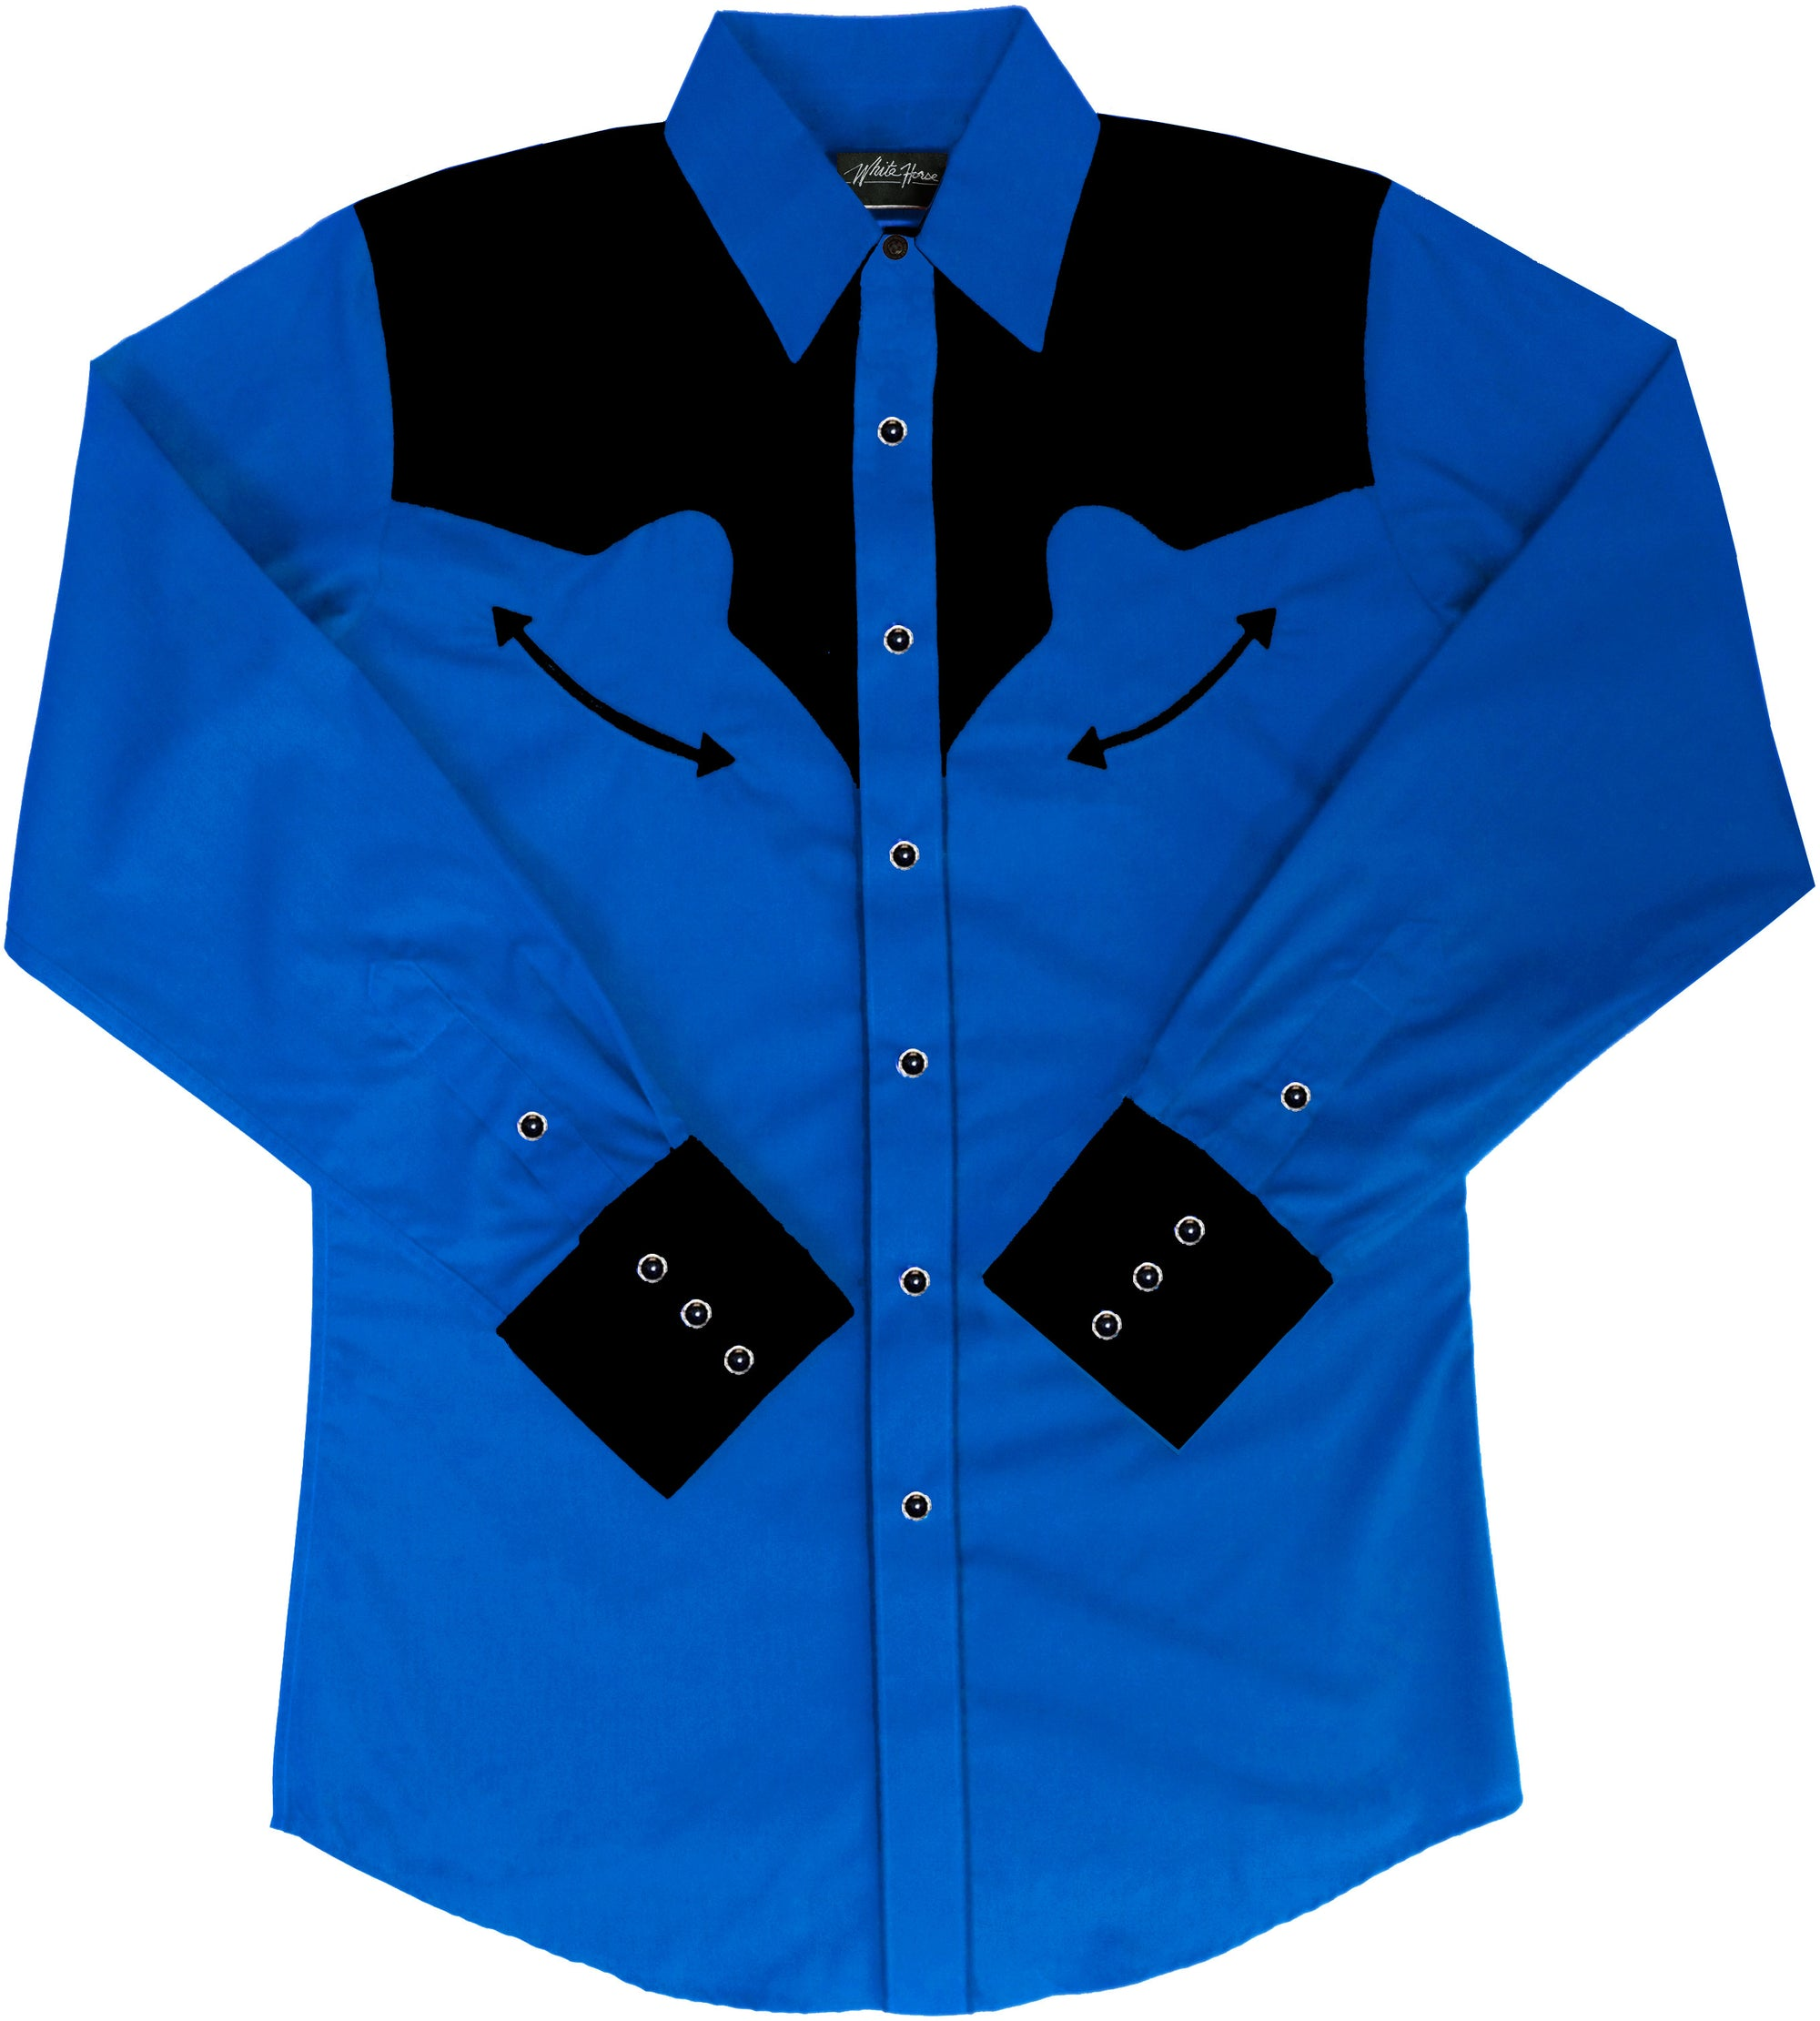 White Horse Men's Royal/Black Yoke & Cuffs Shirt